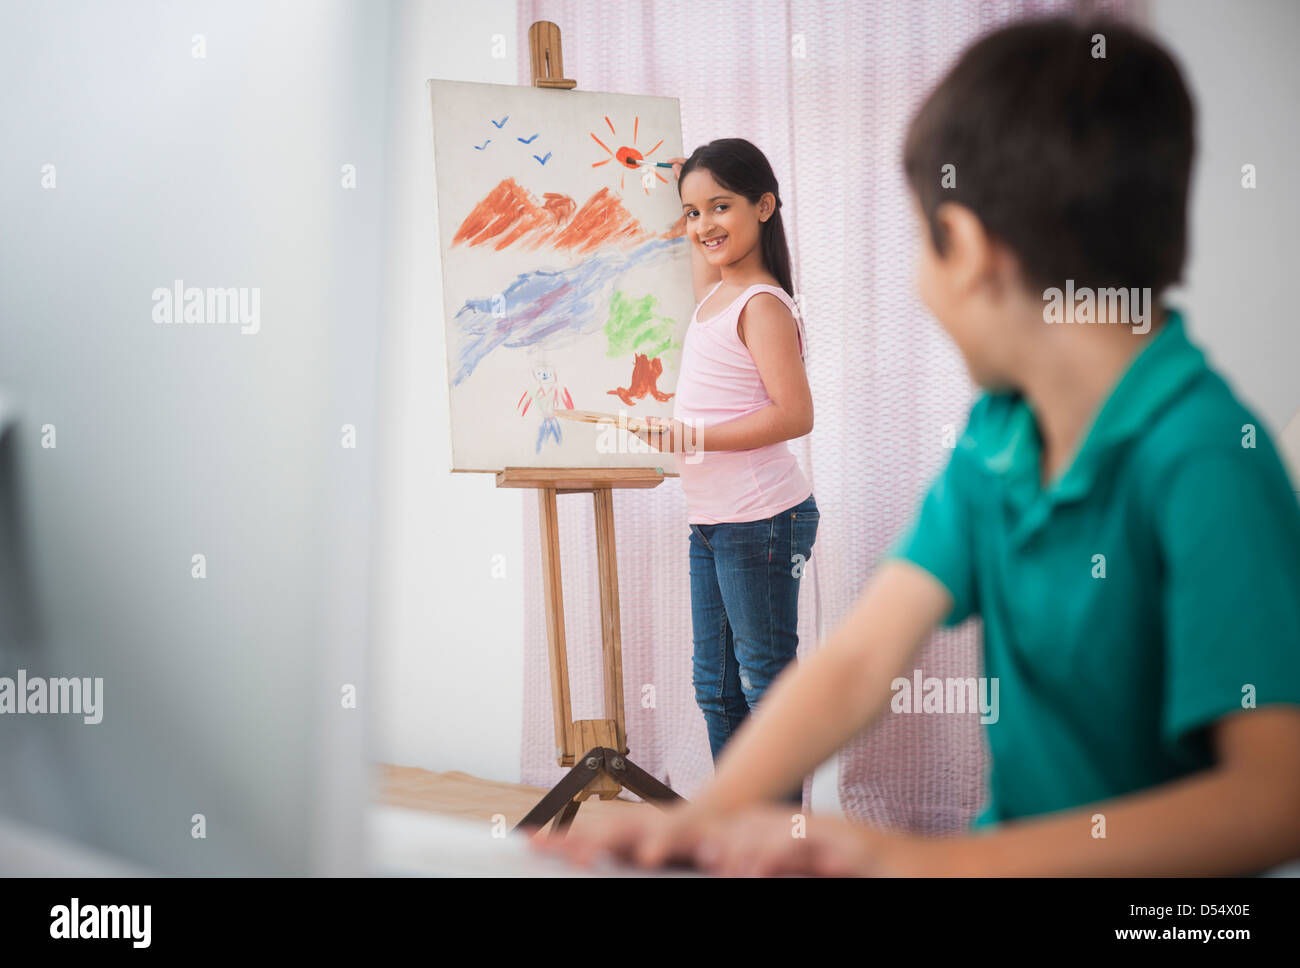 Girl painting on artists canvas with her brother looking at her - Stock Image